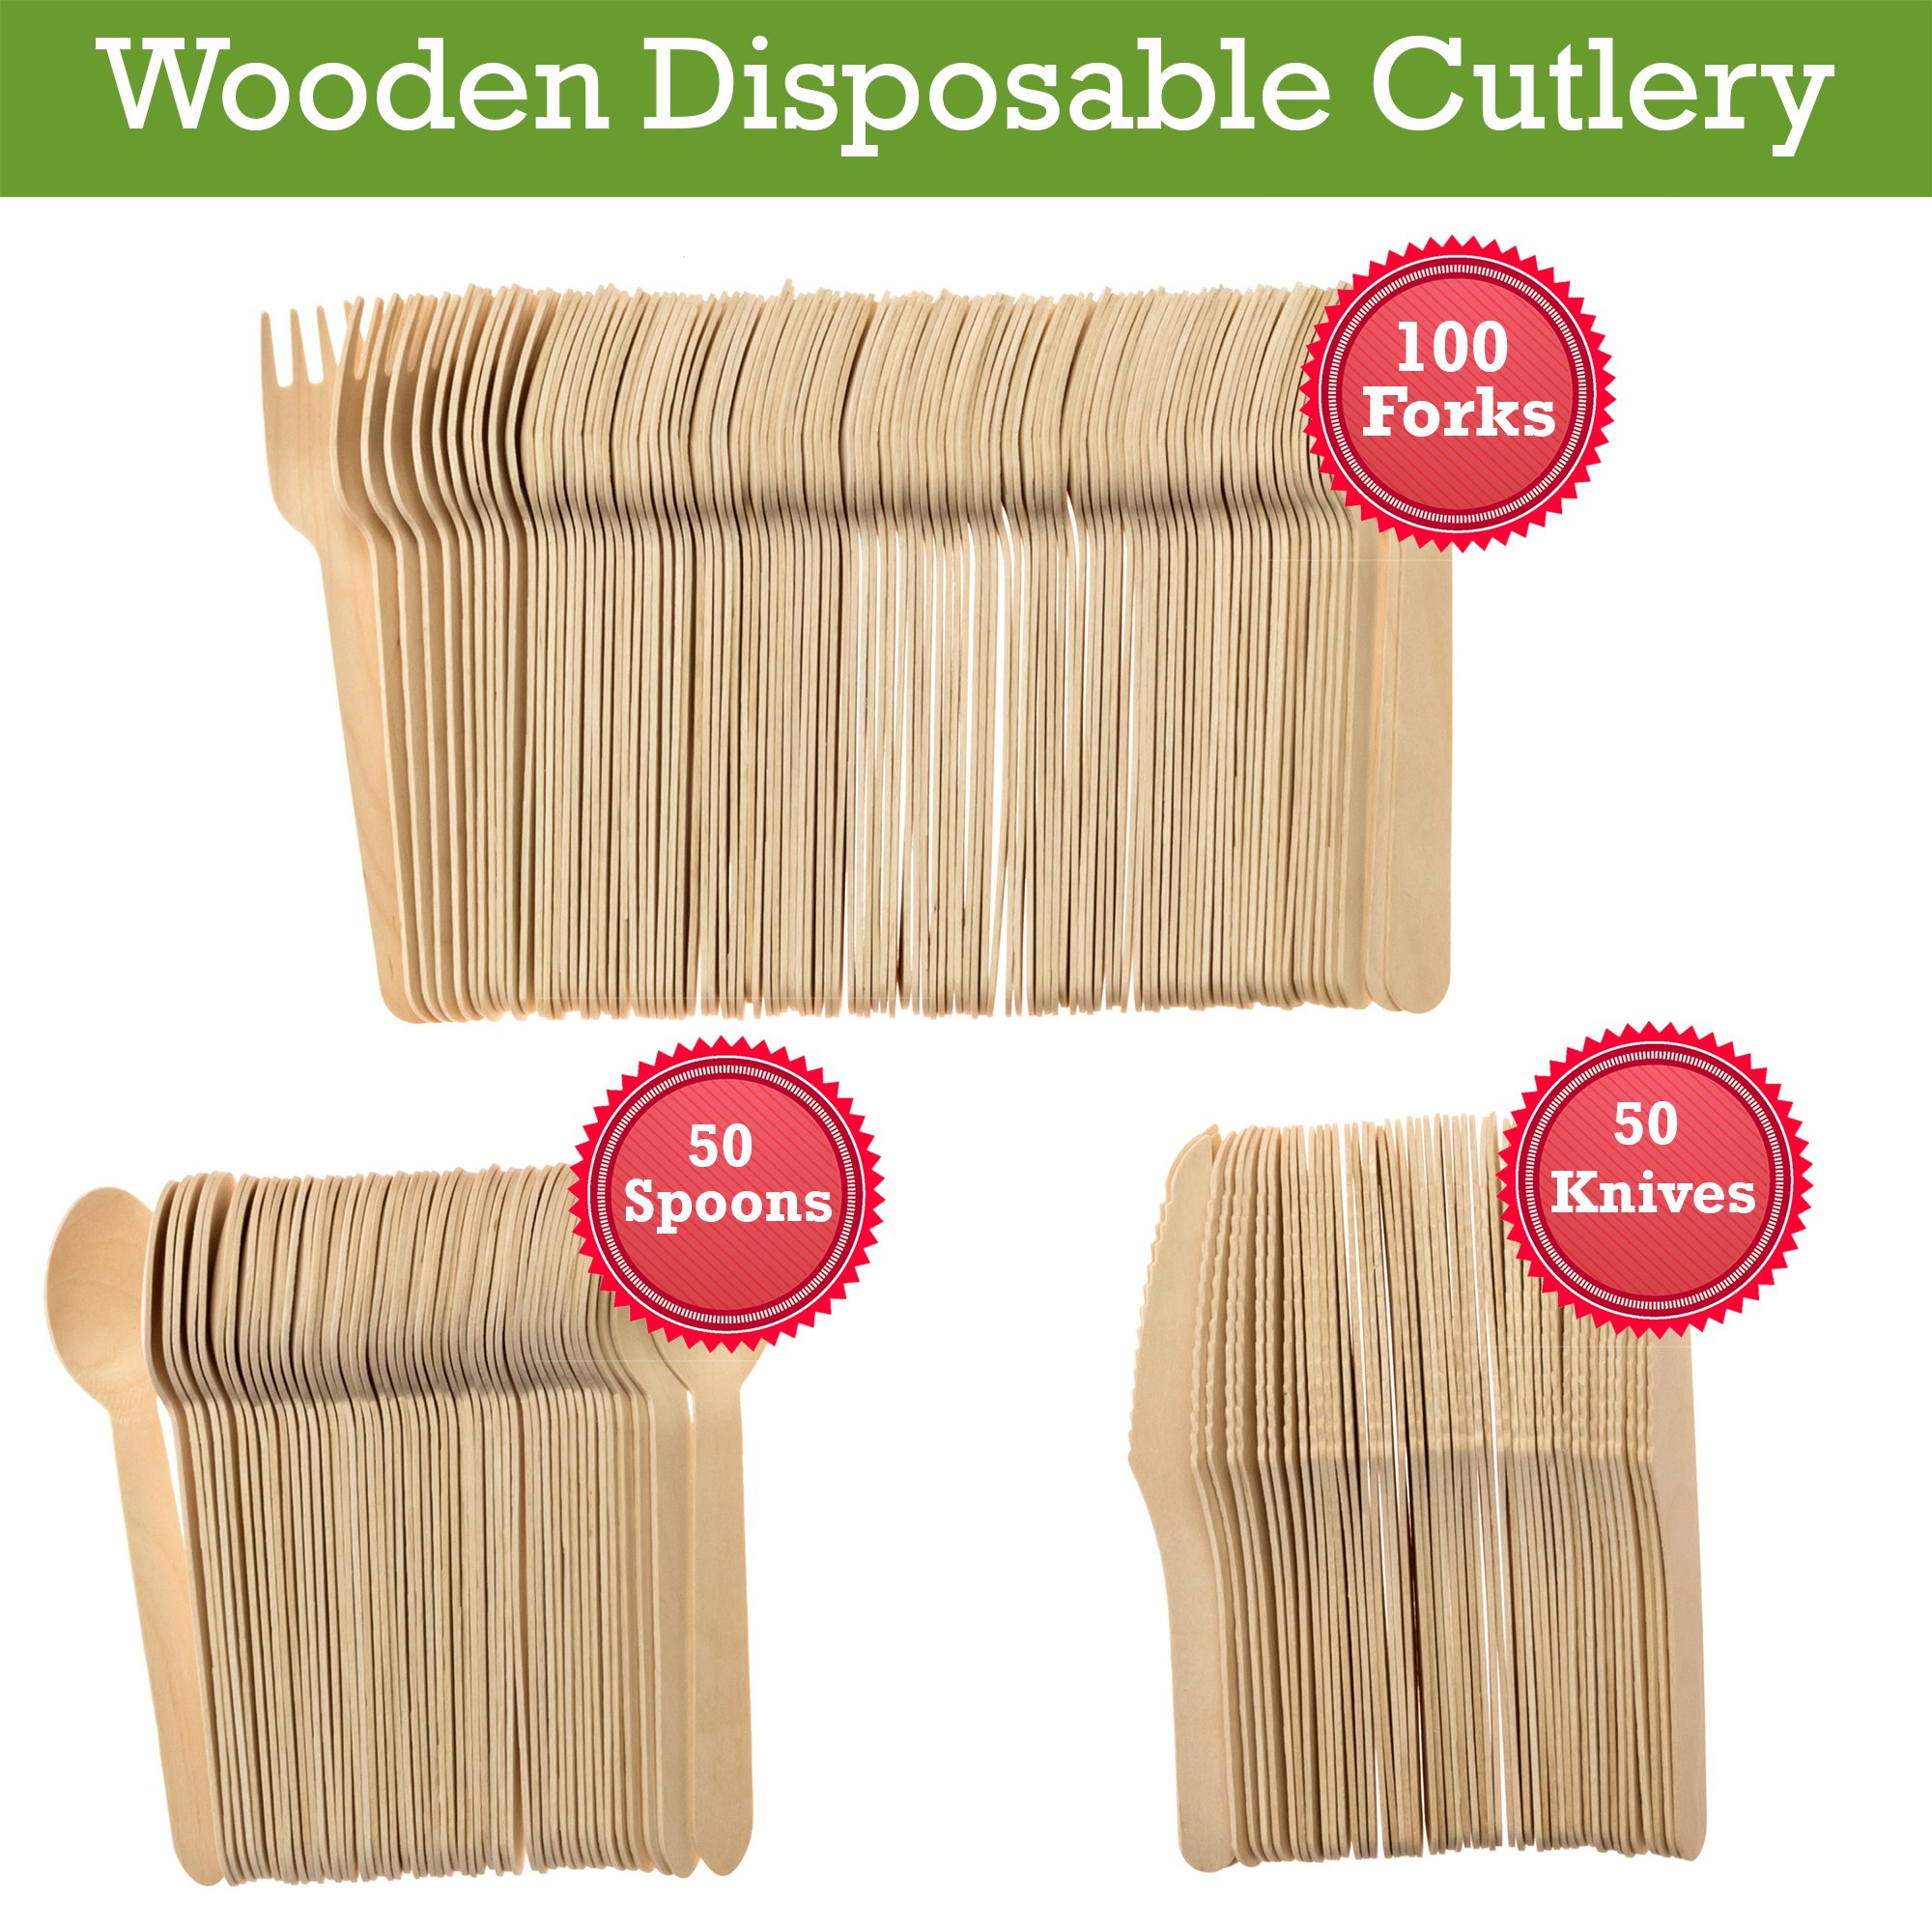 Wooden Disposable Utensils Set 100 Forks 50 Spoons 50 Knives Wood Cutlery Eco Friendly Compostable Biodegradable Silverware Party Flatware Kitchen Serving Eating Picnic Wedding Green Natural Utensil by Wood Trove (Image #5)